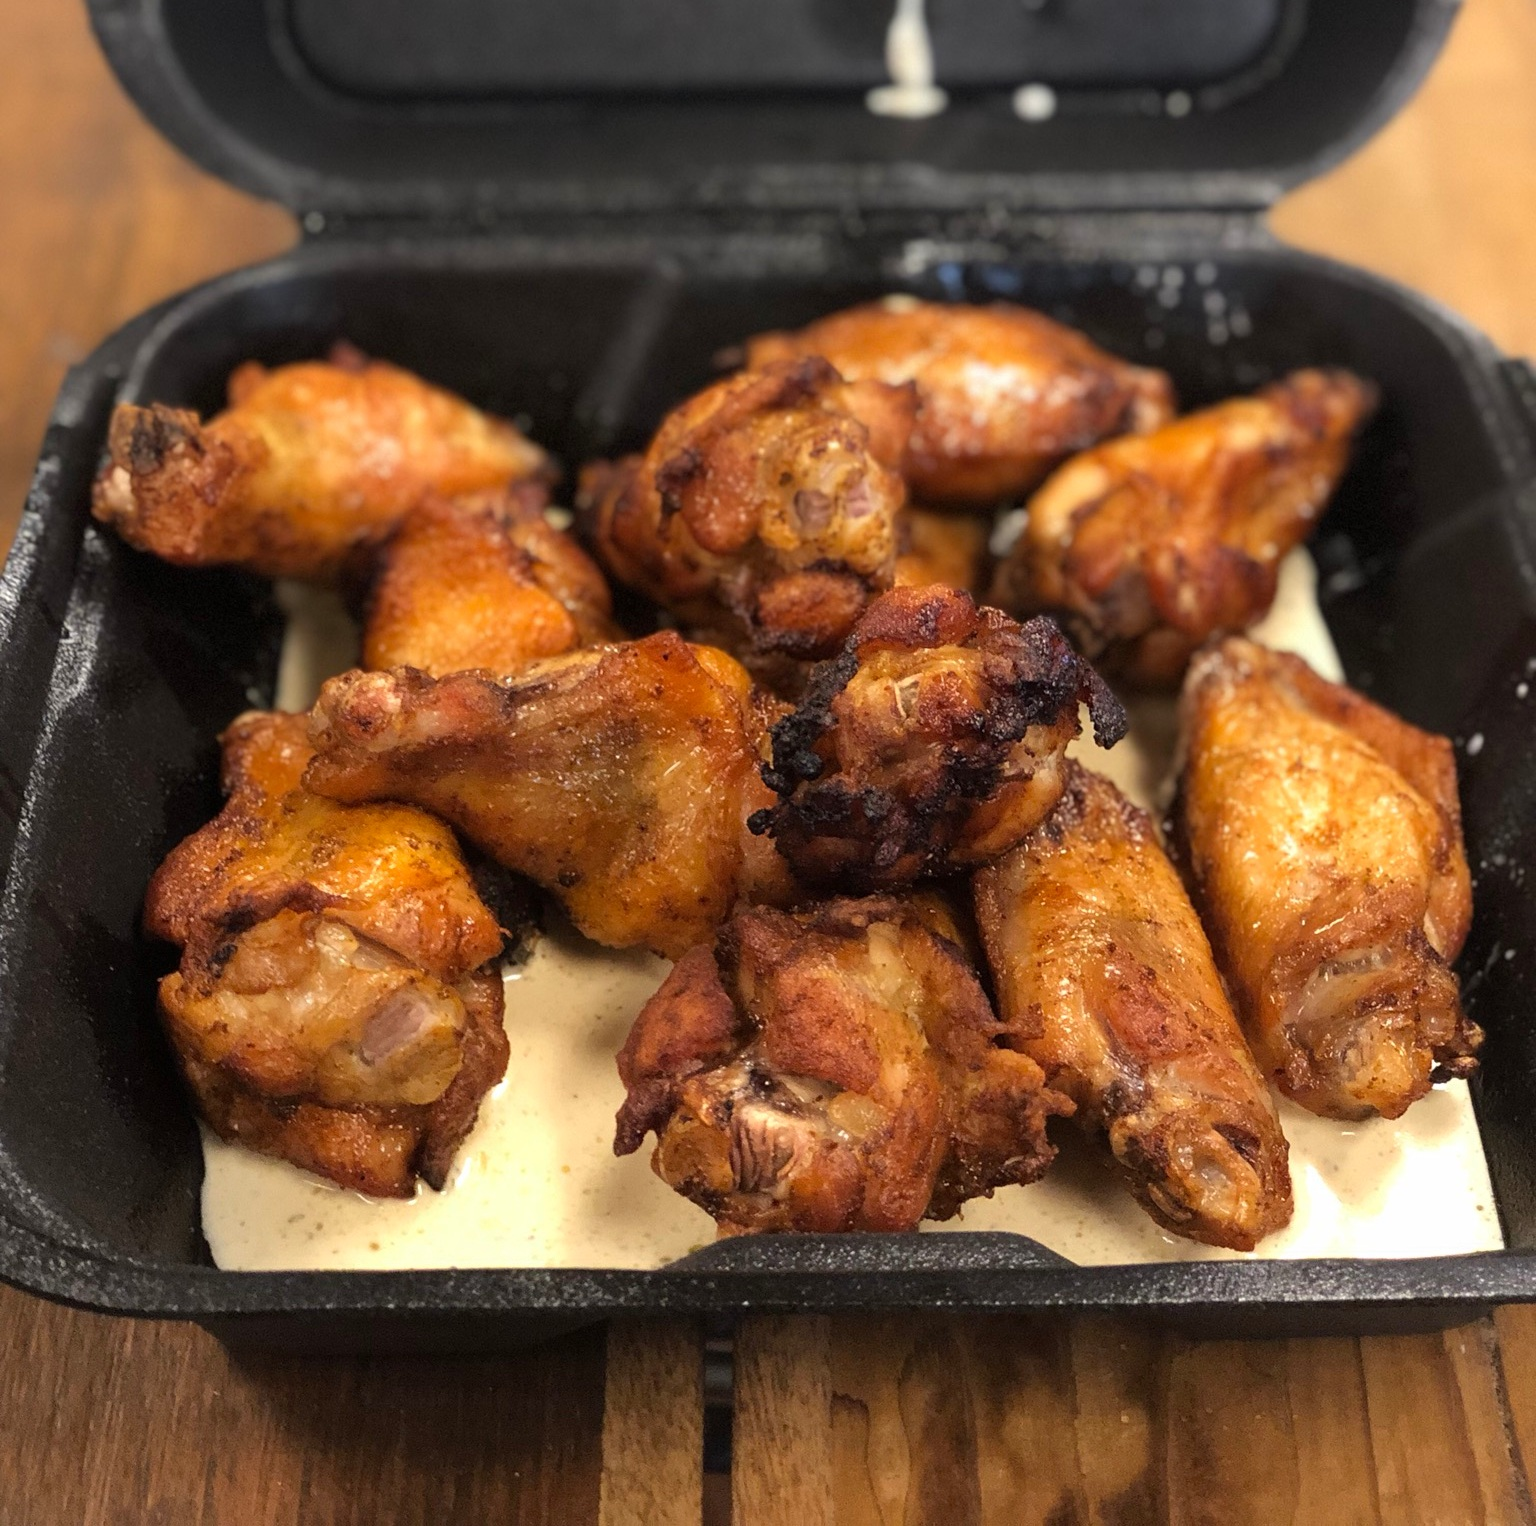 12 Smoked Signature Traditional Wings (No Glaze) with Alabama White Sauce. $15.25 (includes Tax)